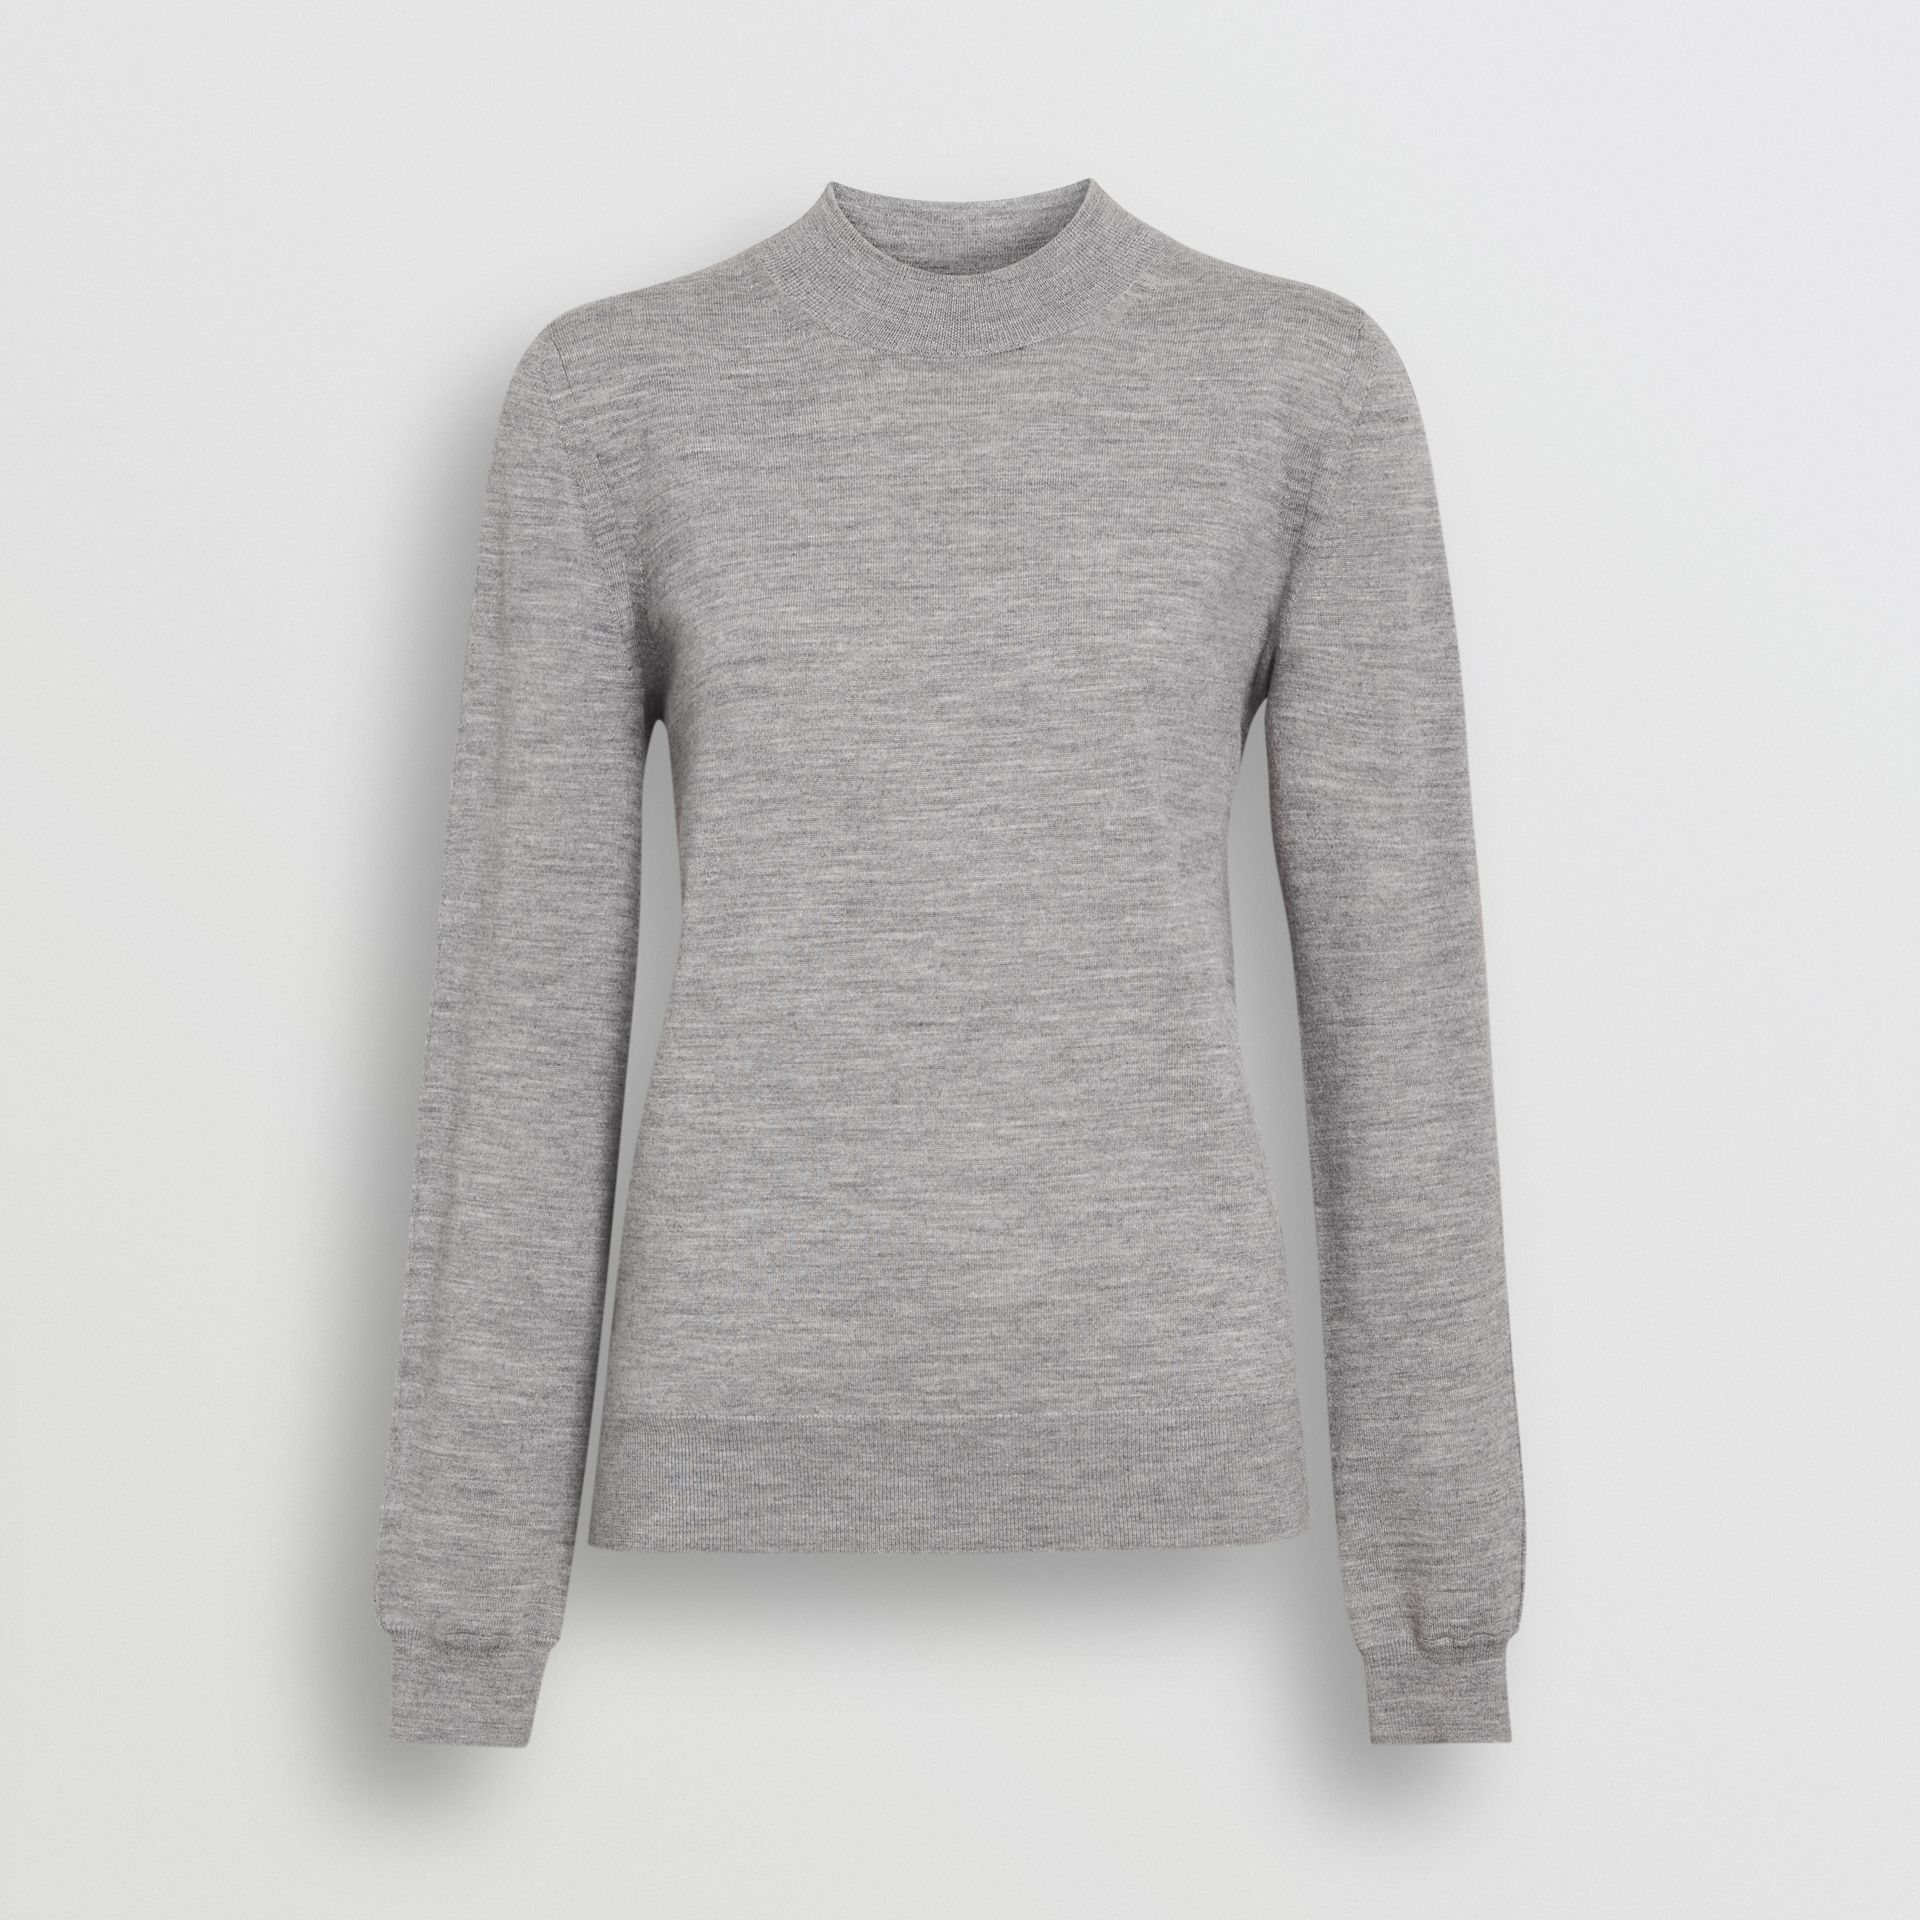 Merino Wool Crew Neck Sweater in Grey Melange - Women | Burberry United States - gallery image 3